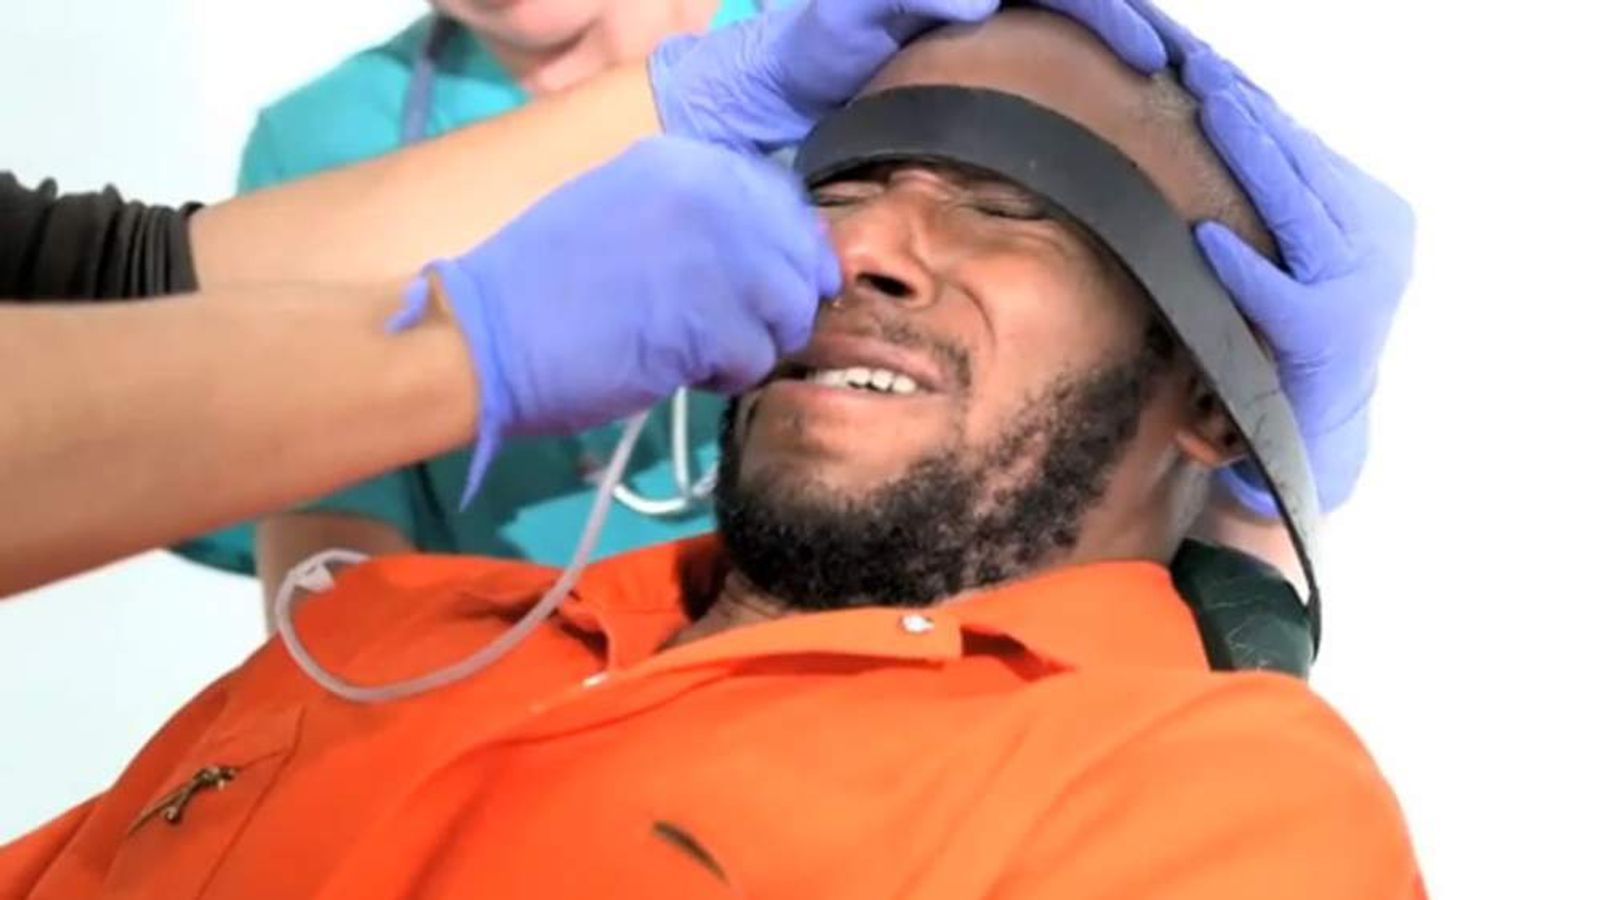 Mos Def takes part in force-feeding video for Reprieve.